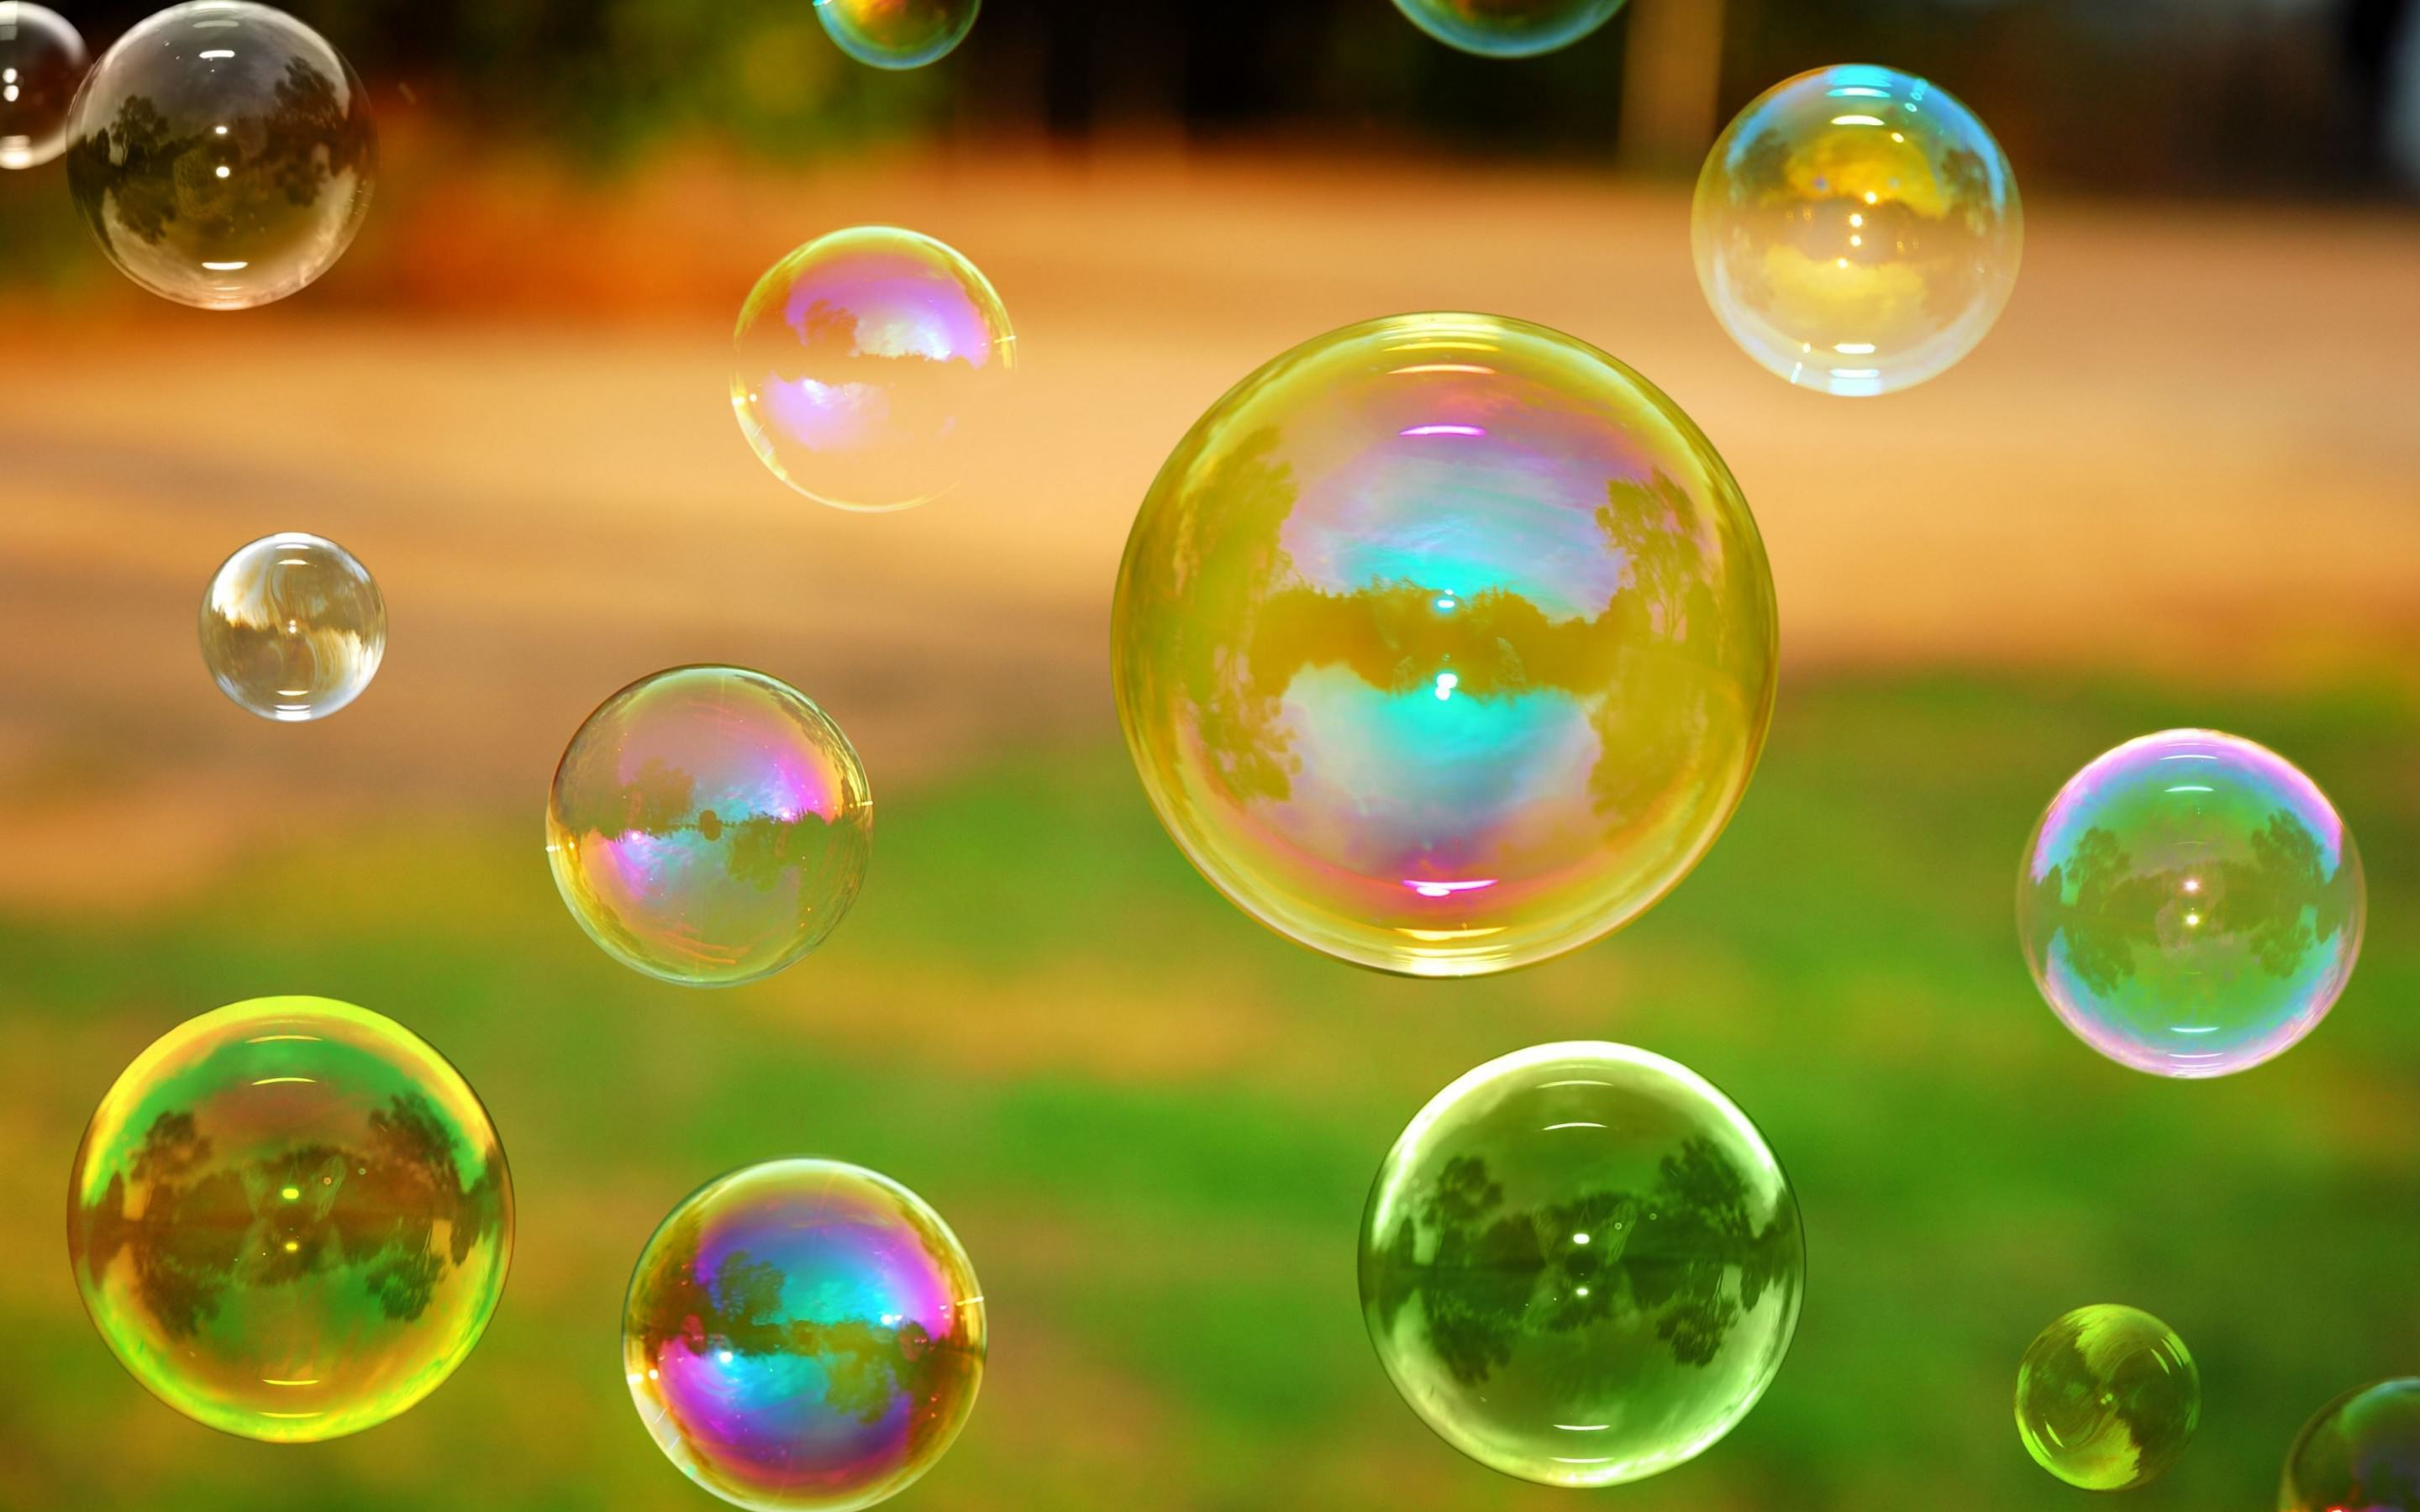 Amazing Bubble Wallpaper